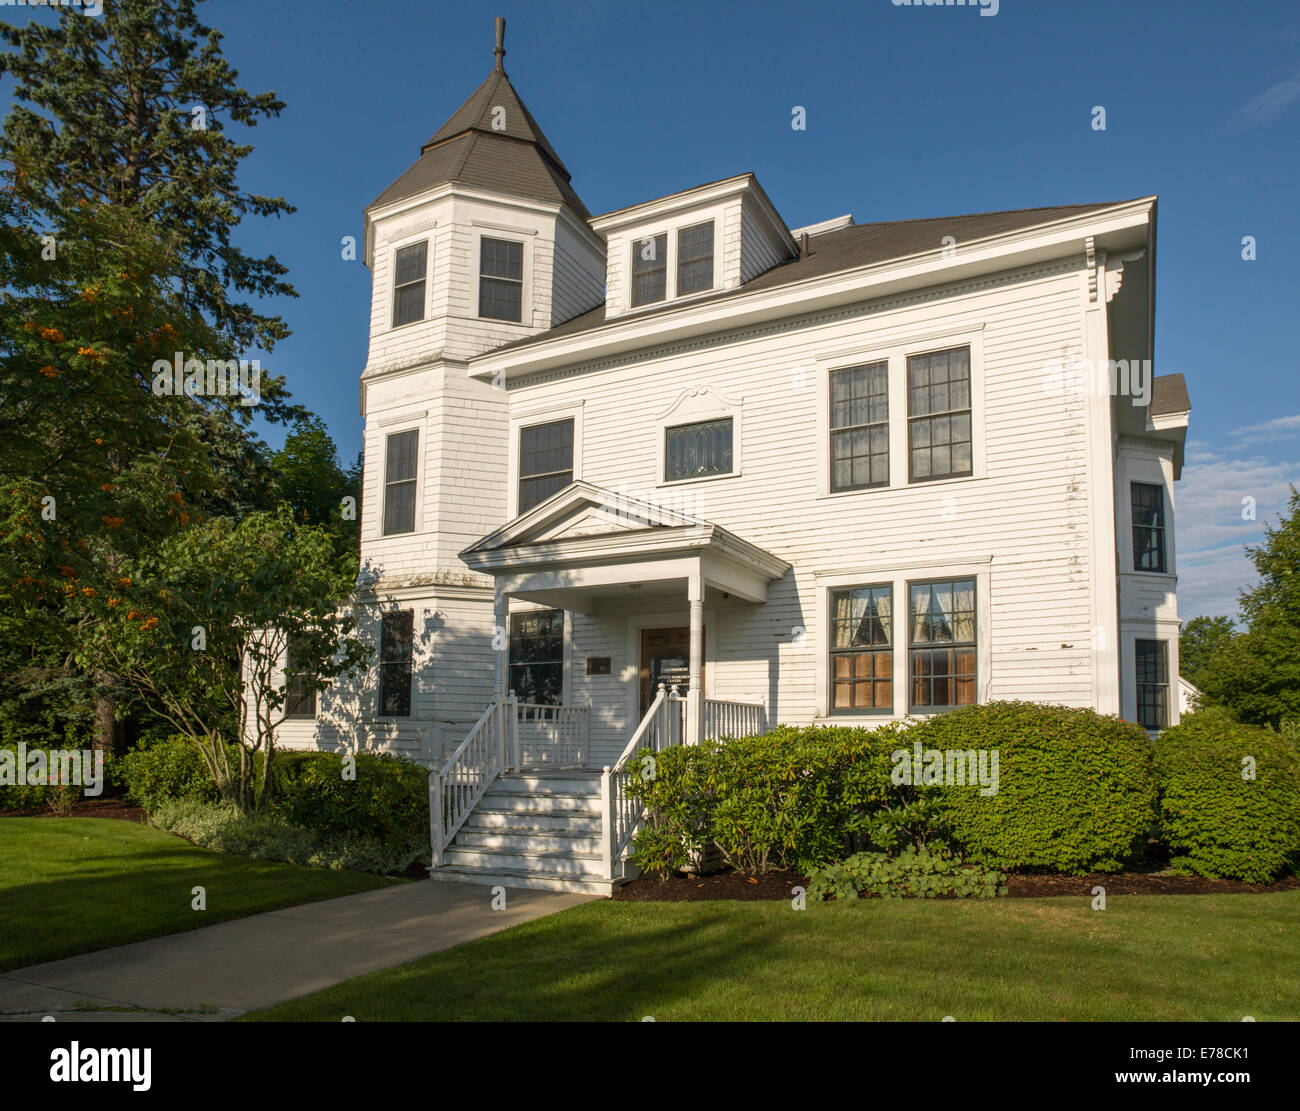 Traditional Victorian style home in New England with turret and gable. - Stock Image